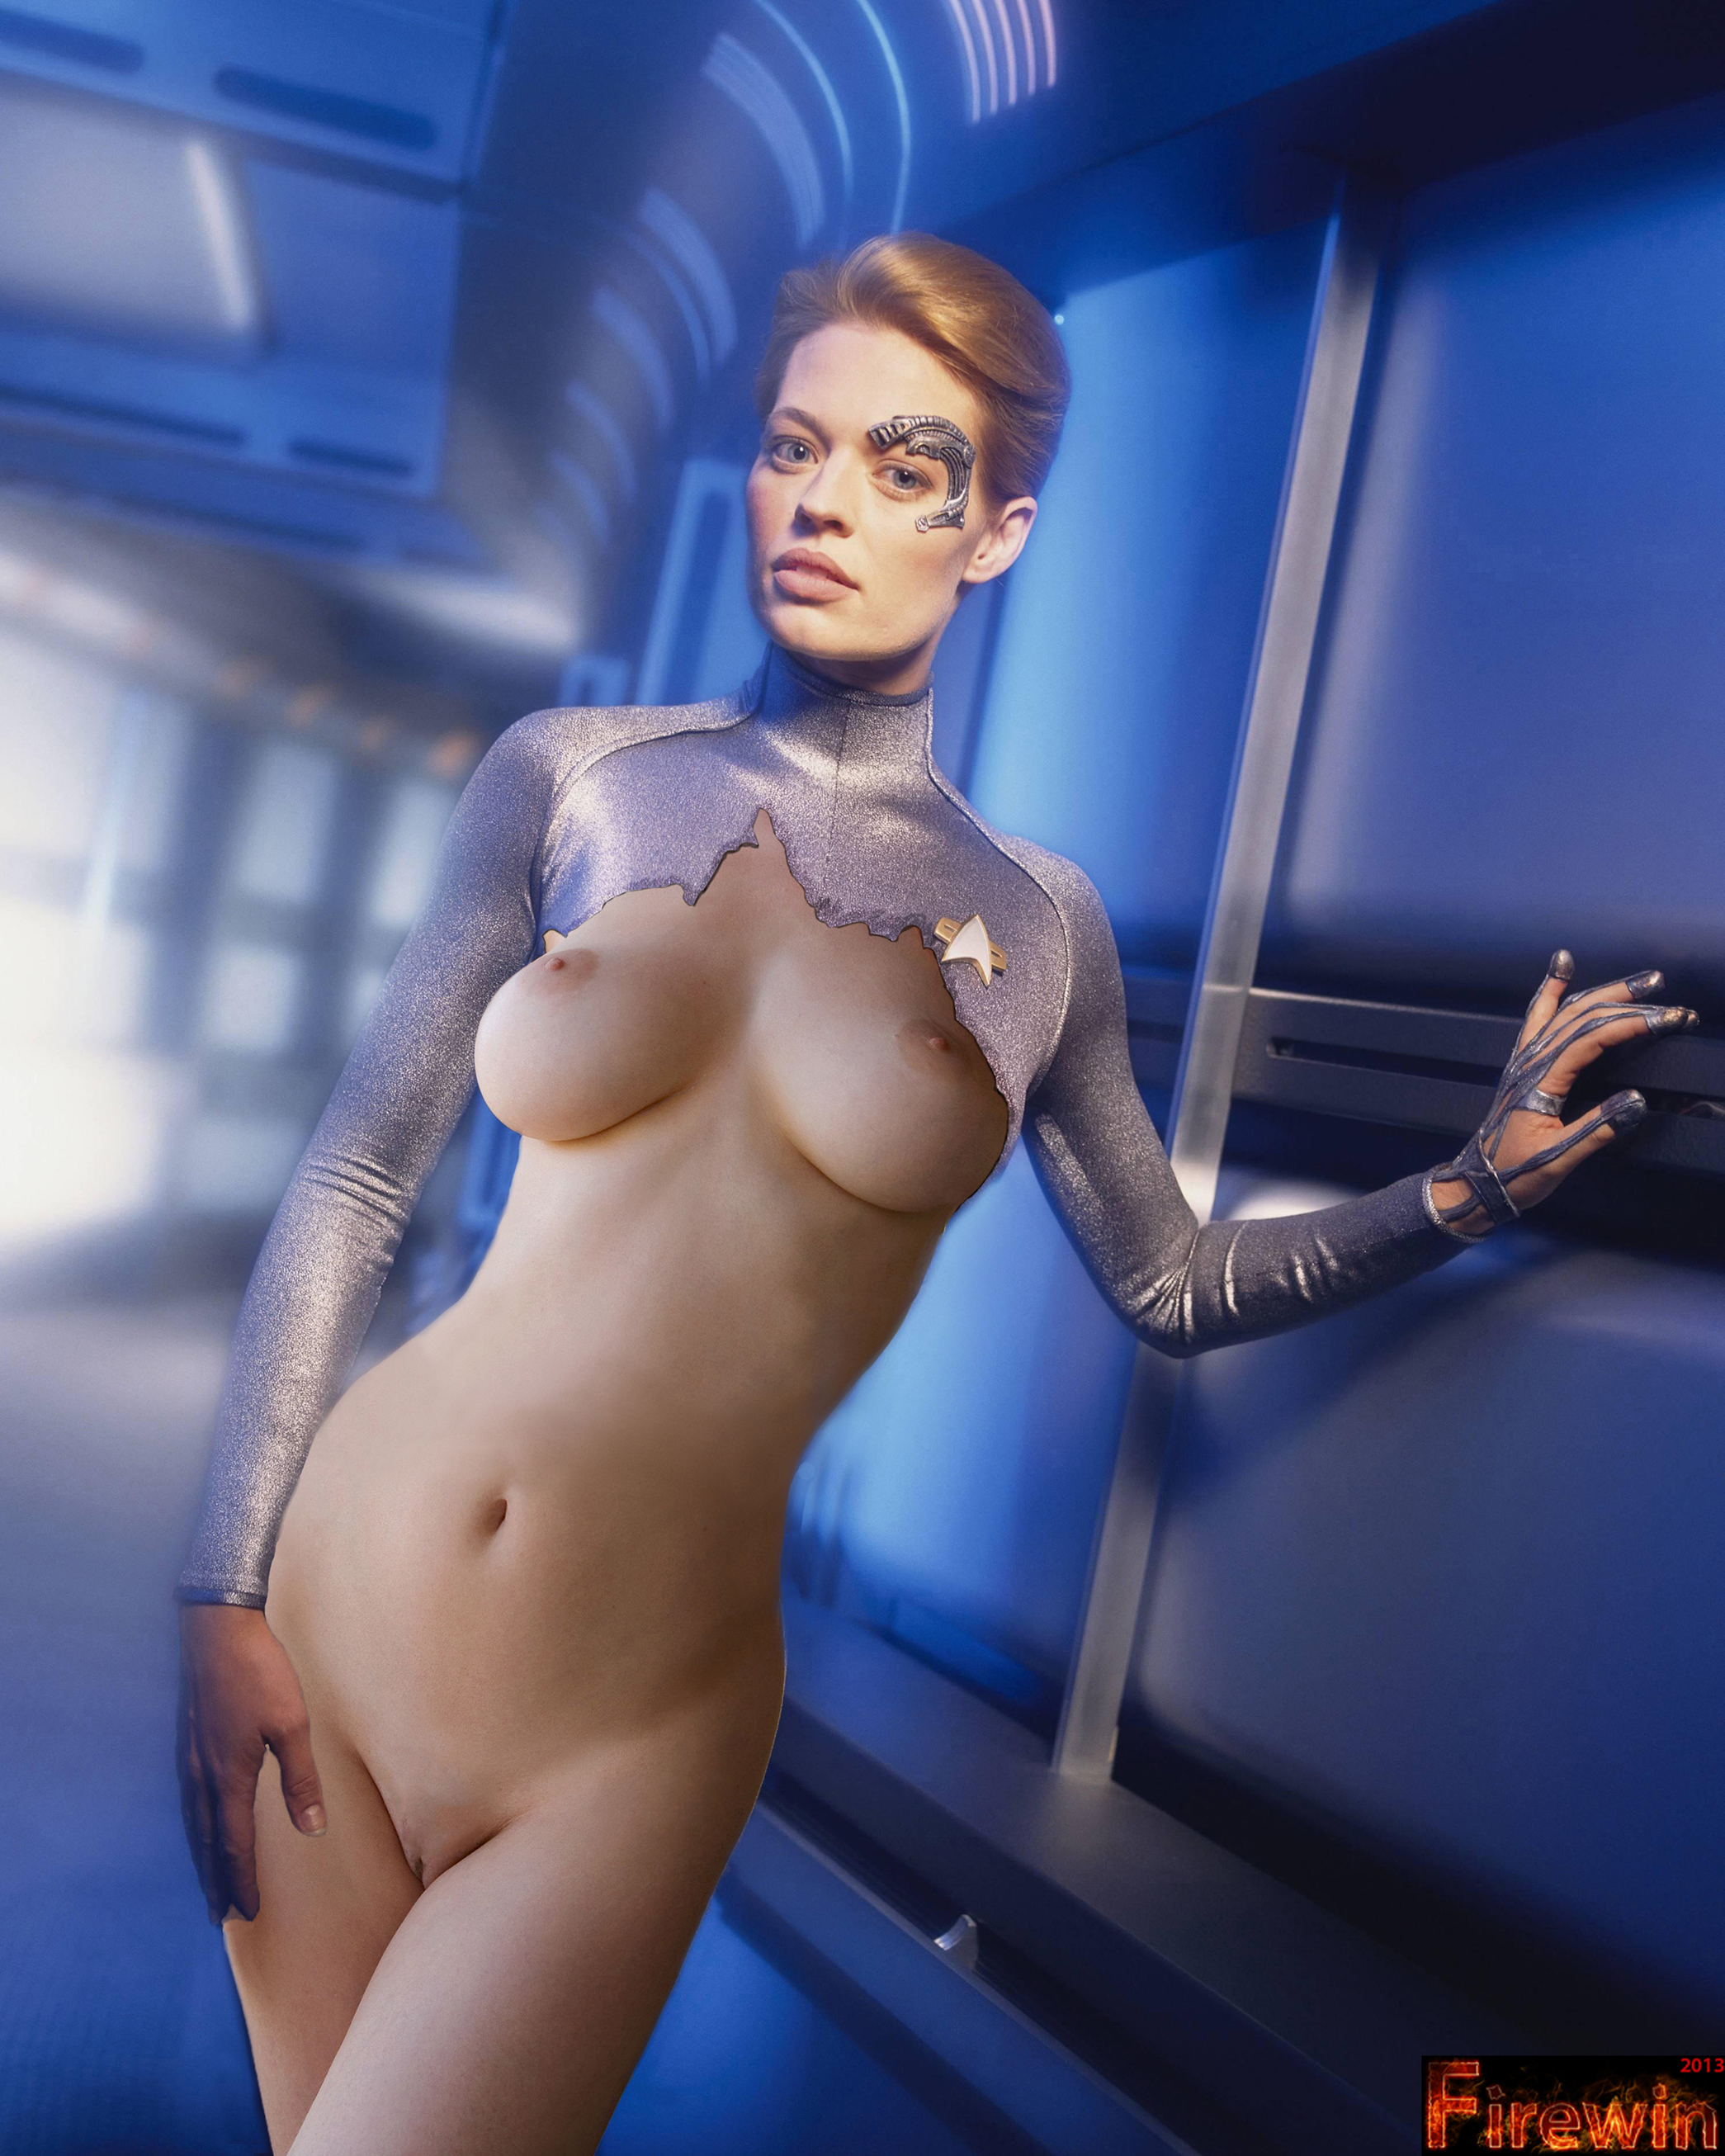 For that Star trek seven of nine porno